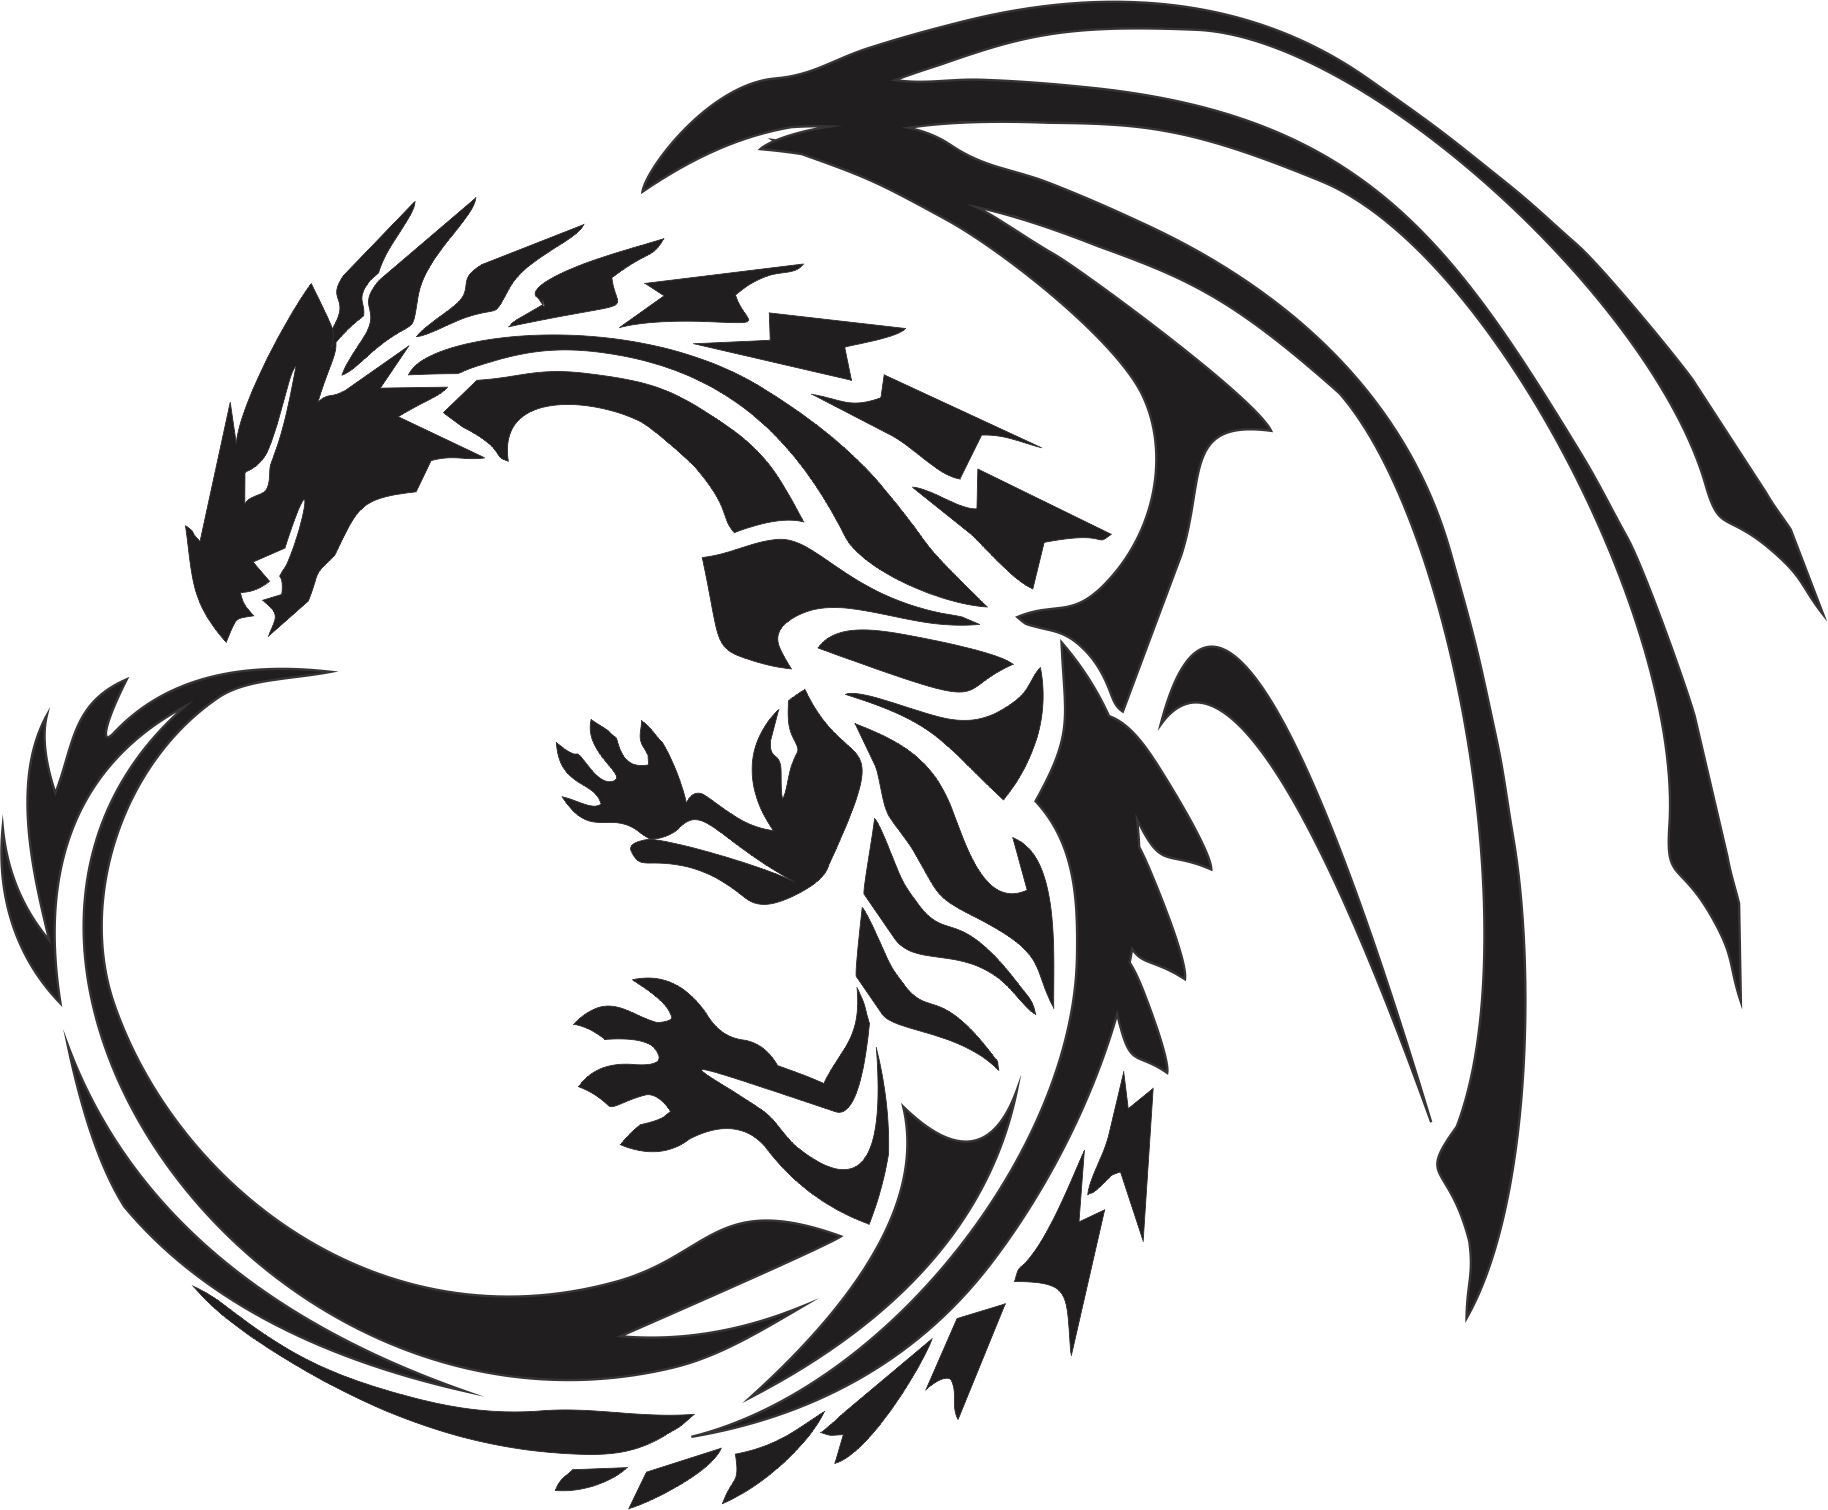 Dragon Tattoo Png image #39050